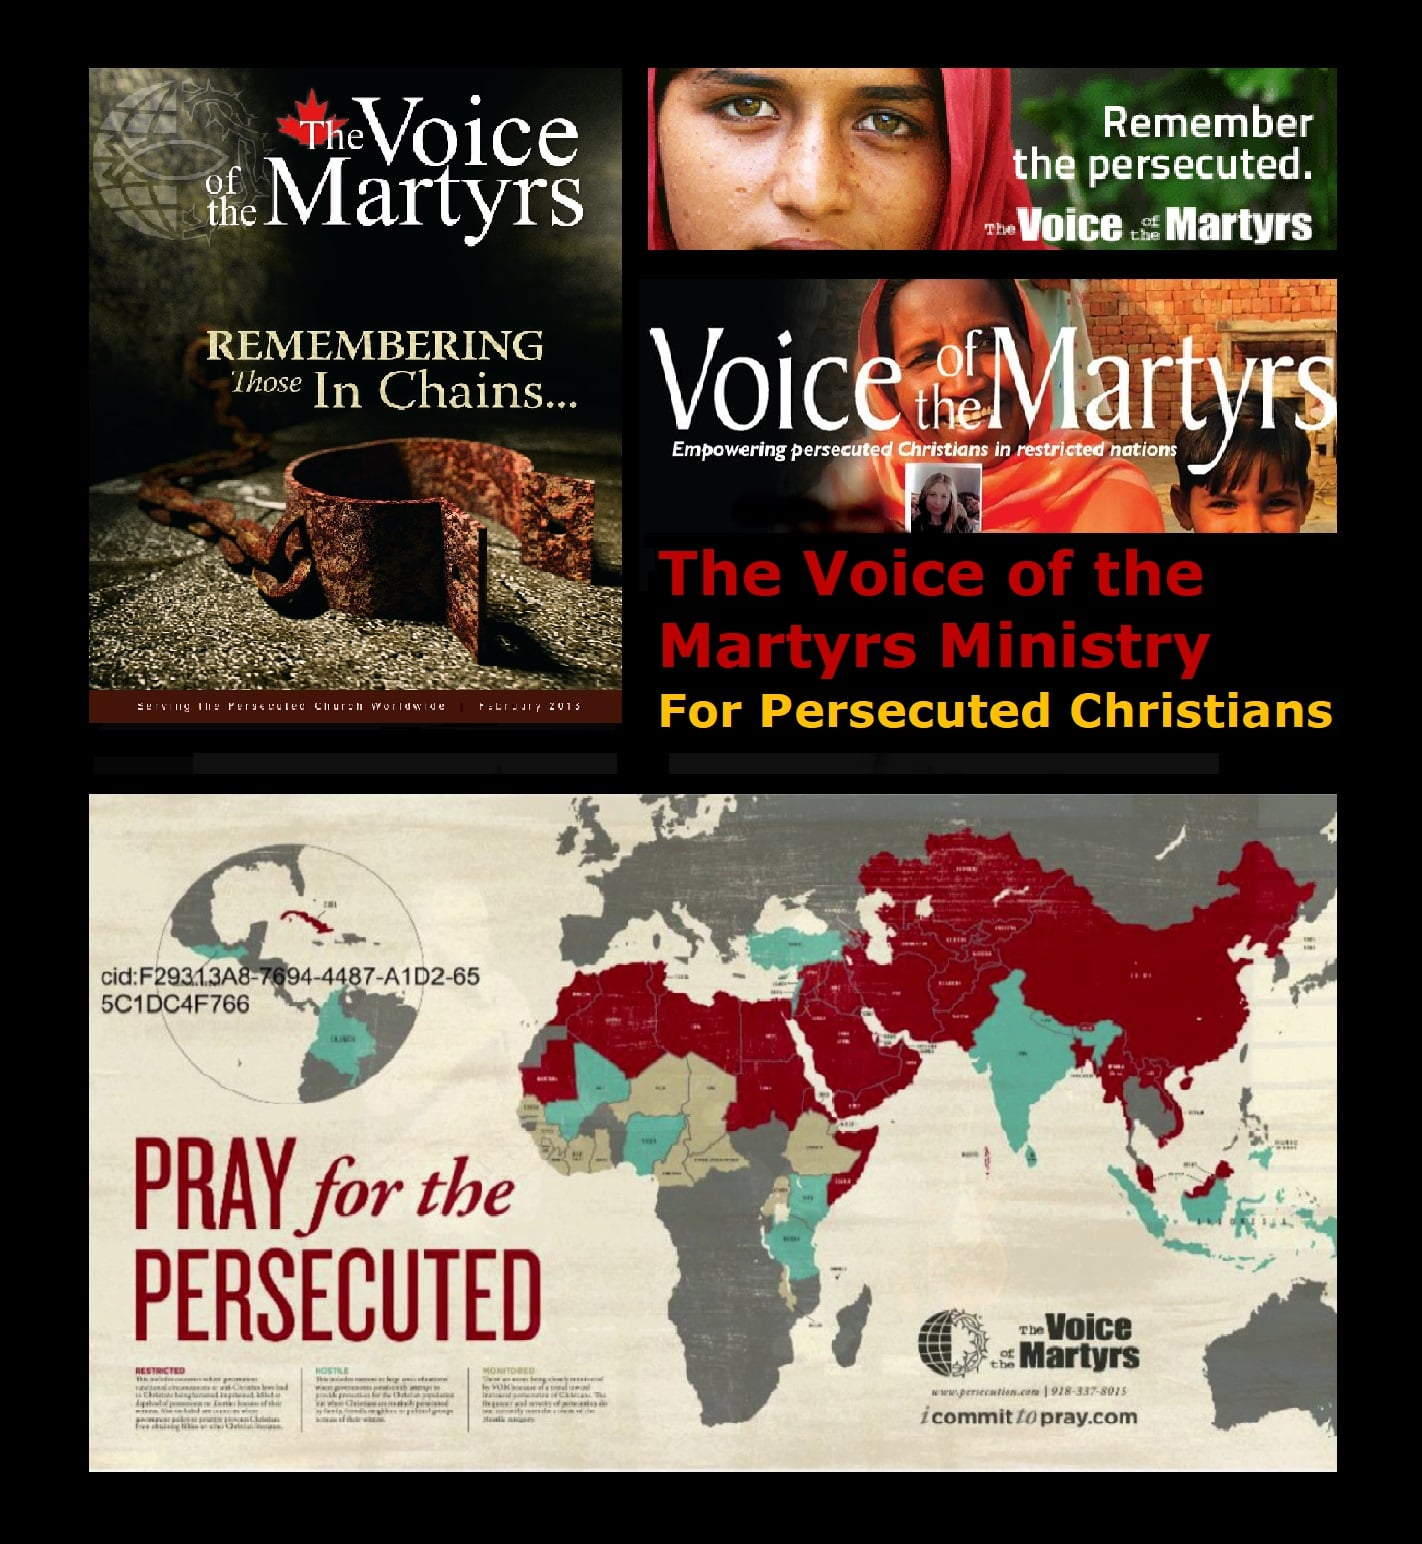 The Voice of the Martyrs Ministry